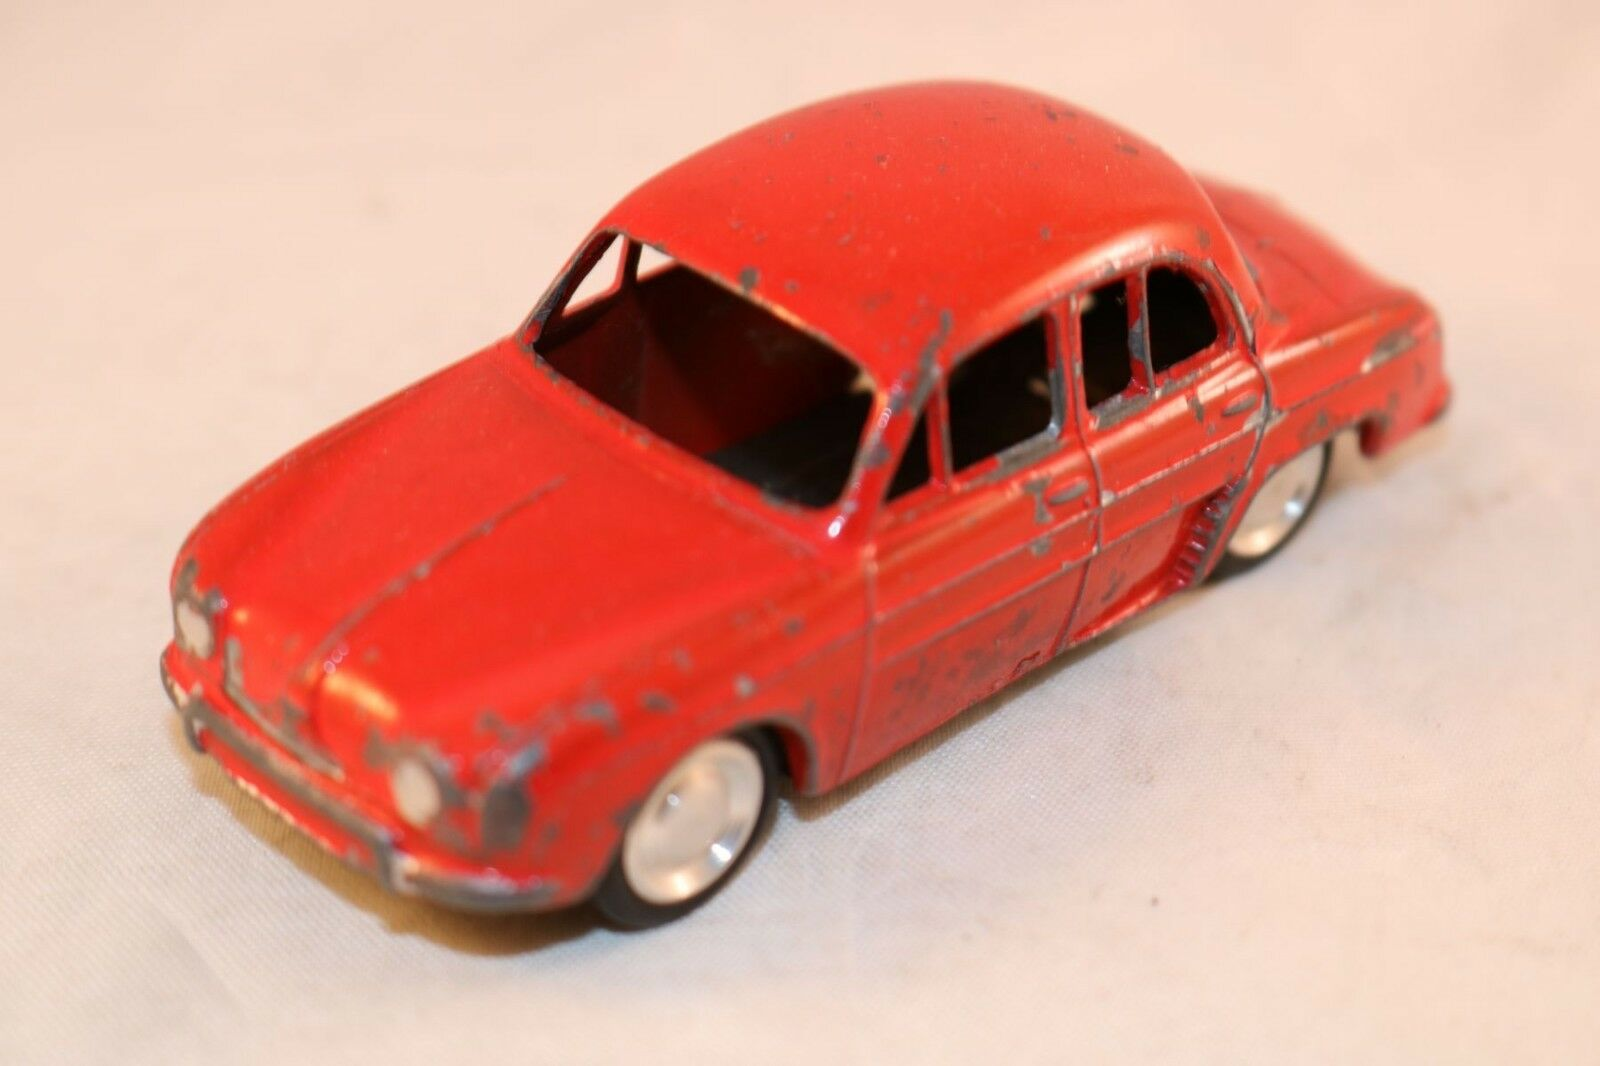 Lion Car Renault Dauphine red in good plus original condition made in Holland